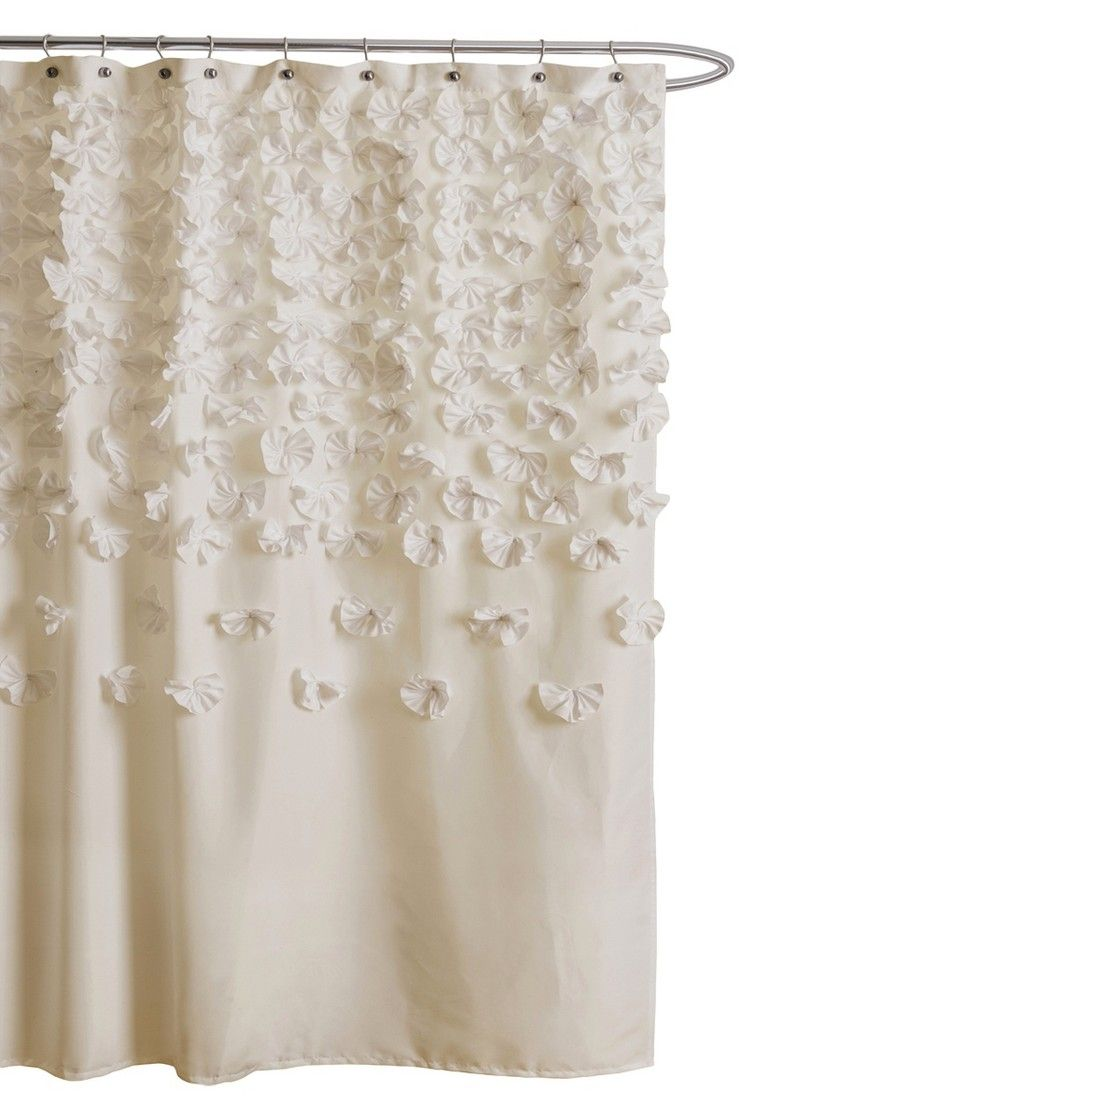 Lush Cor Lucia Scattered Flower Texture Shower Curtain Projects Jpg 1120x1120 Anthropologies Tender Falls